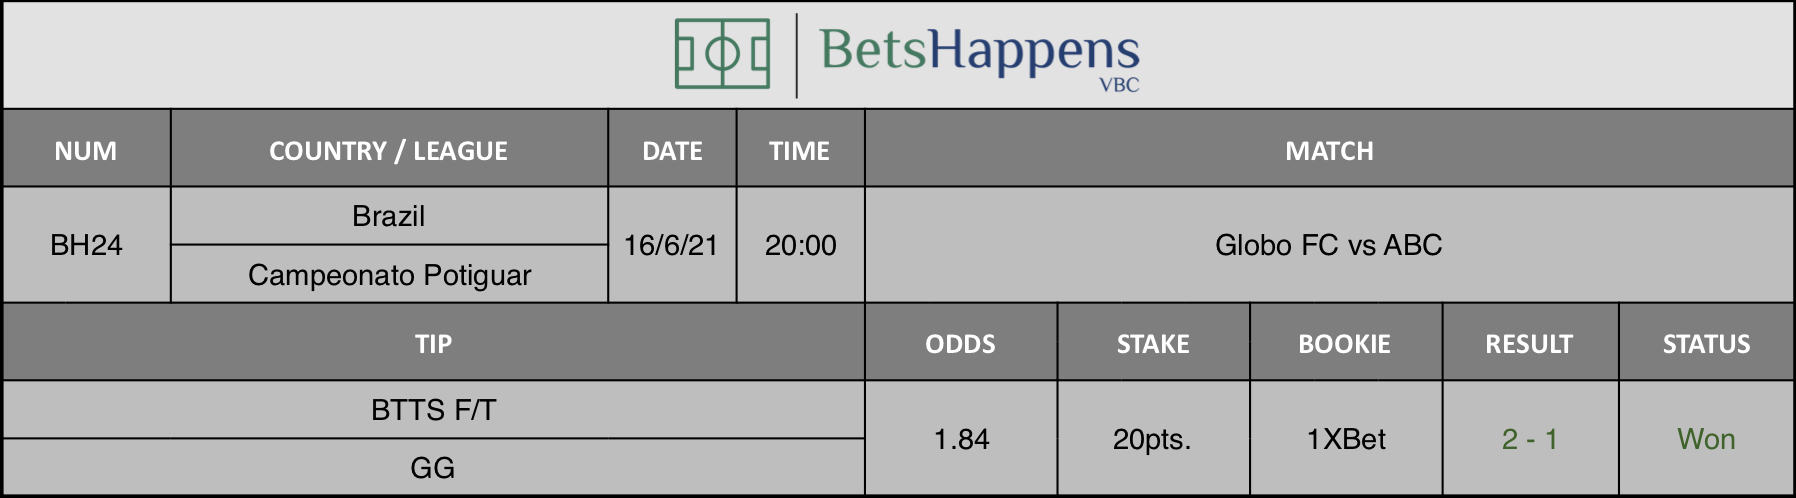 Results of our tip for the Globo FC vs ABC Match BTTS GG is recommended.